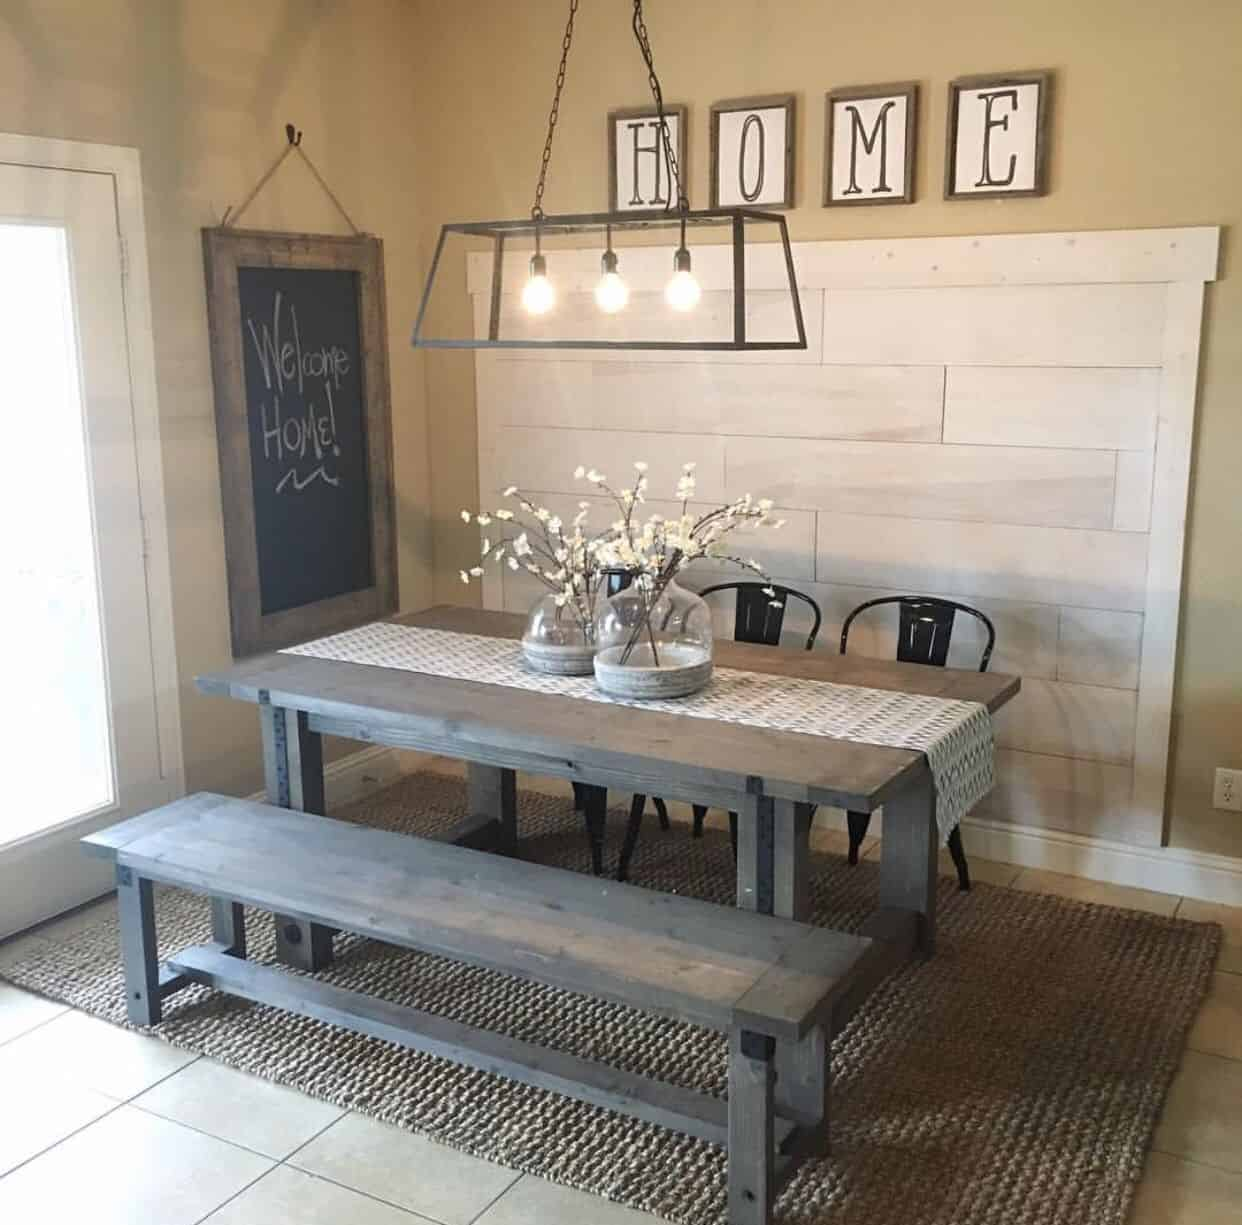 A simple breakfast nook can make a simple statement in your home